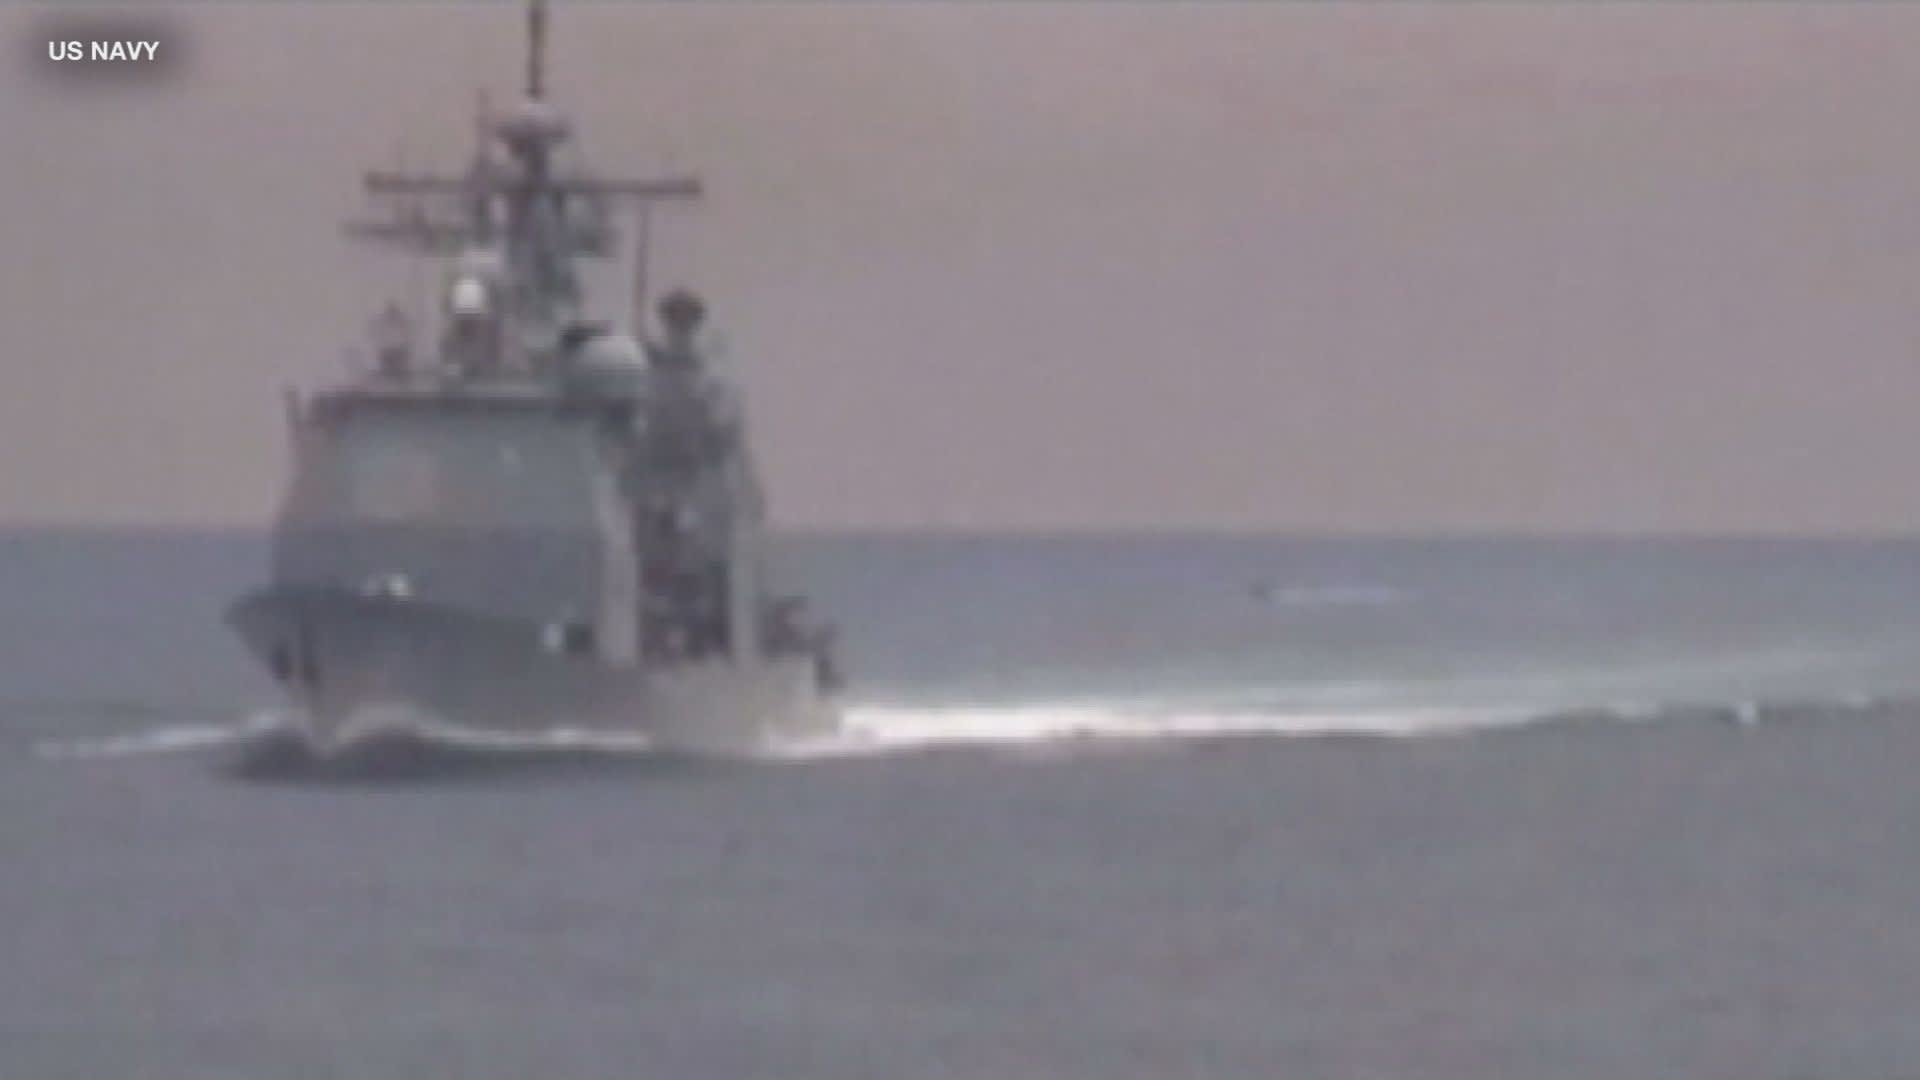 Militarized Iranian fast-boats prevented tug boats from salvaging damaged oil tanker, US officials say